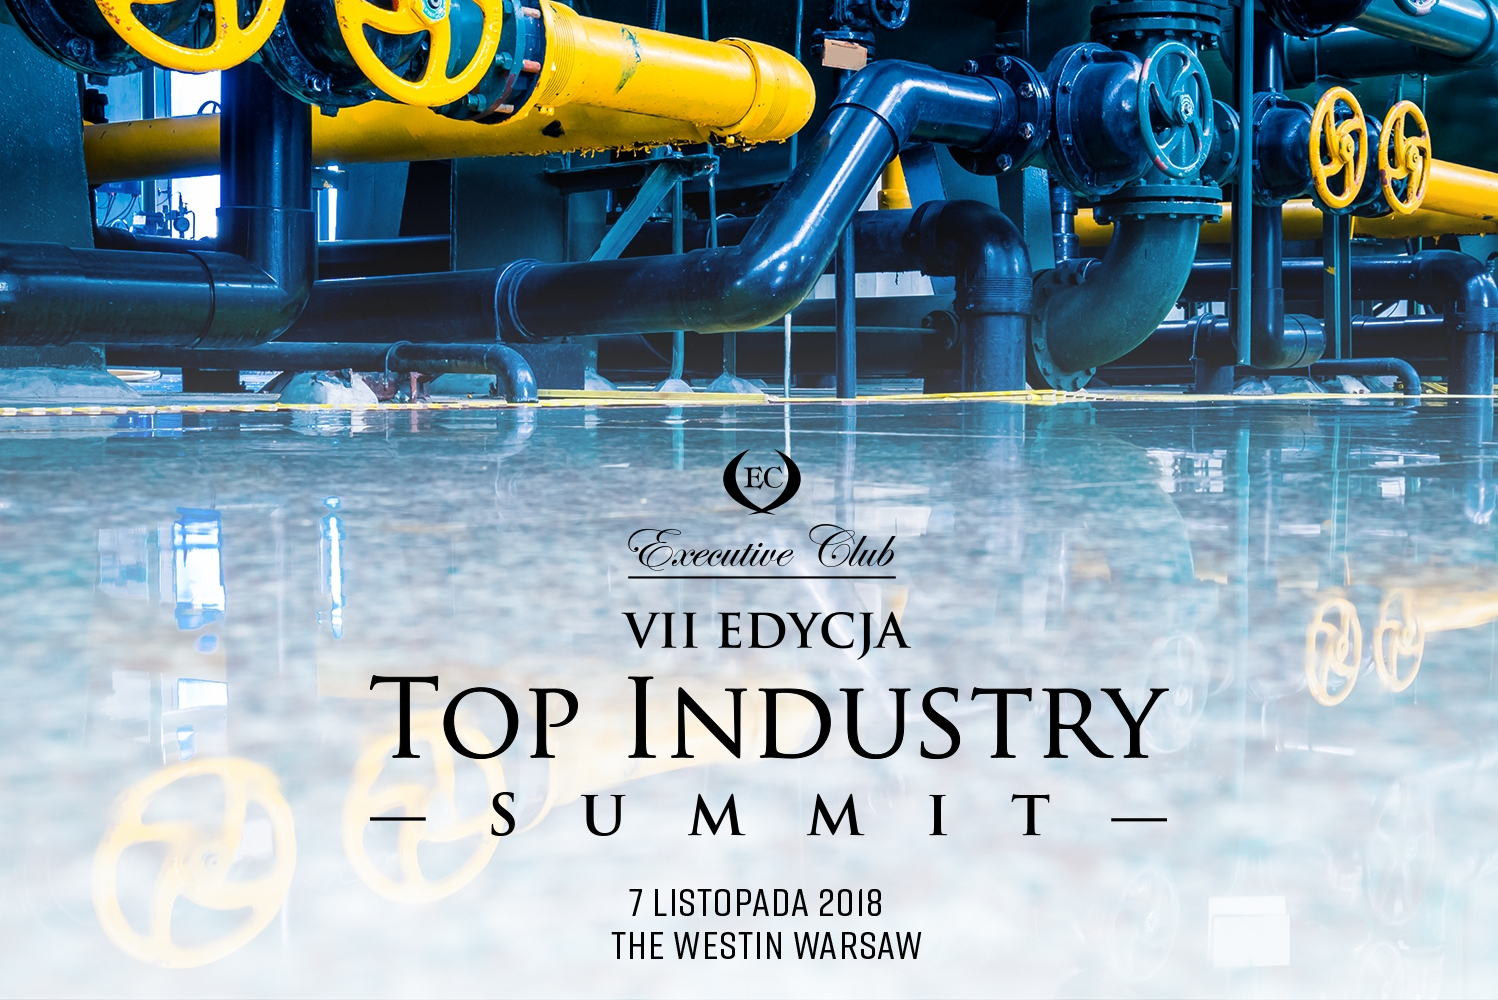 VII edycja Top Industry Summit